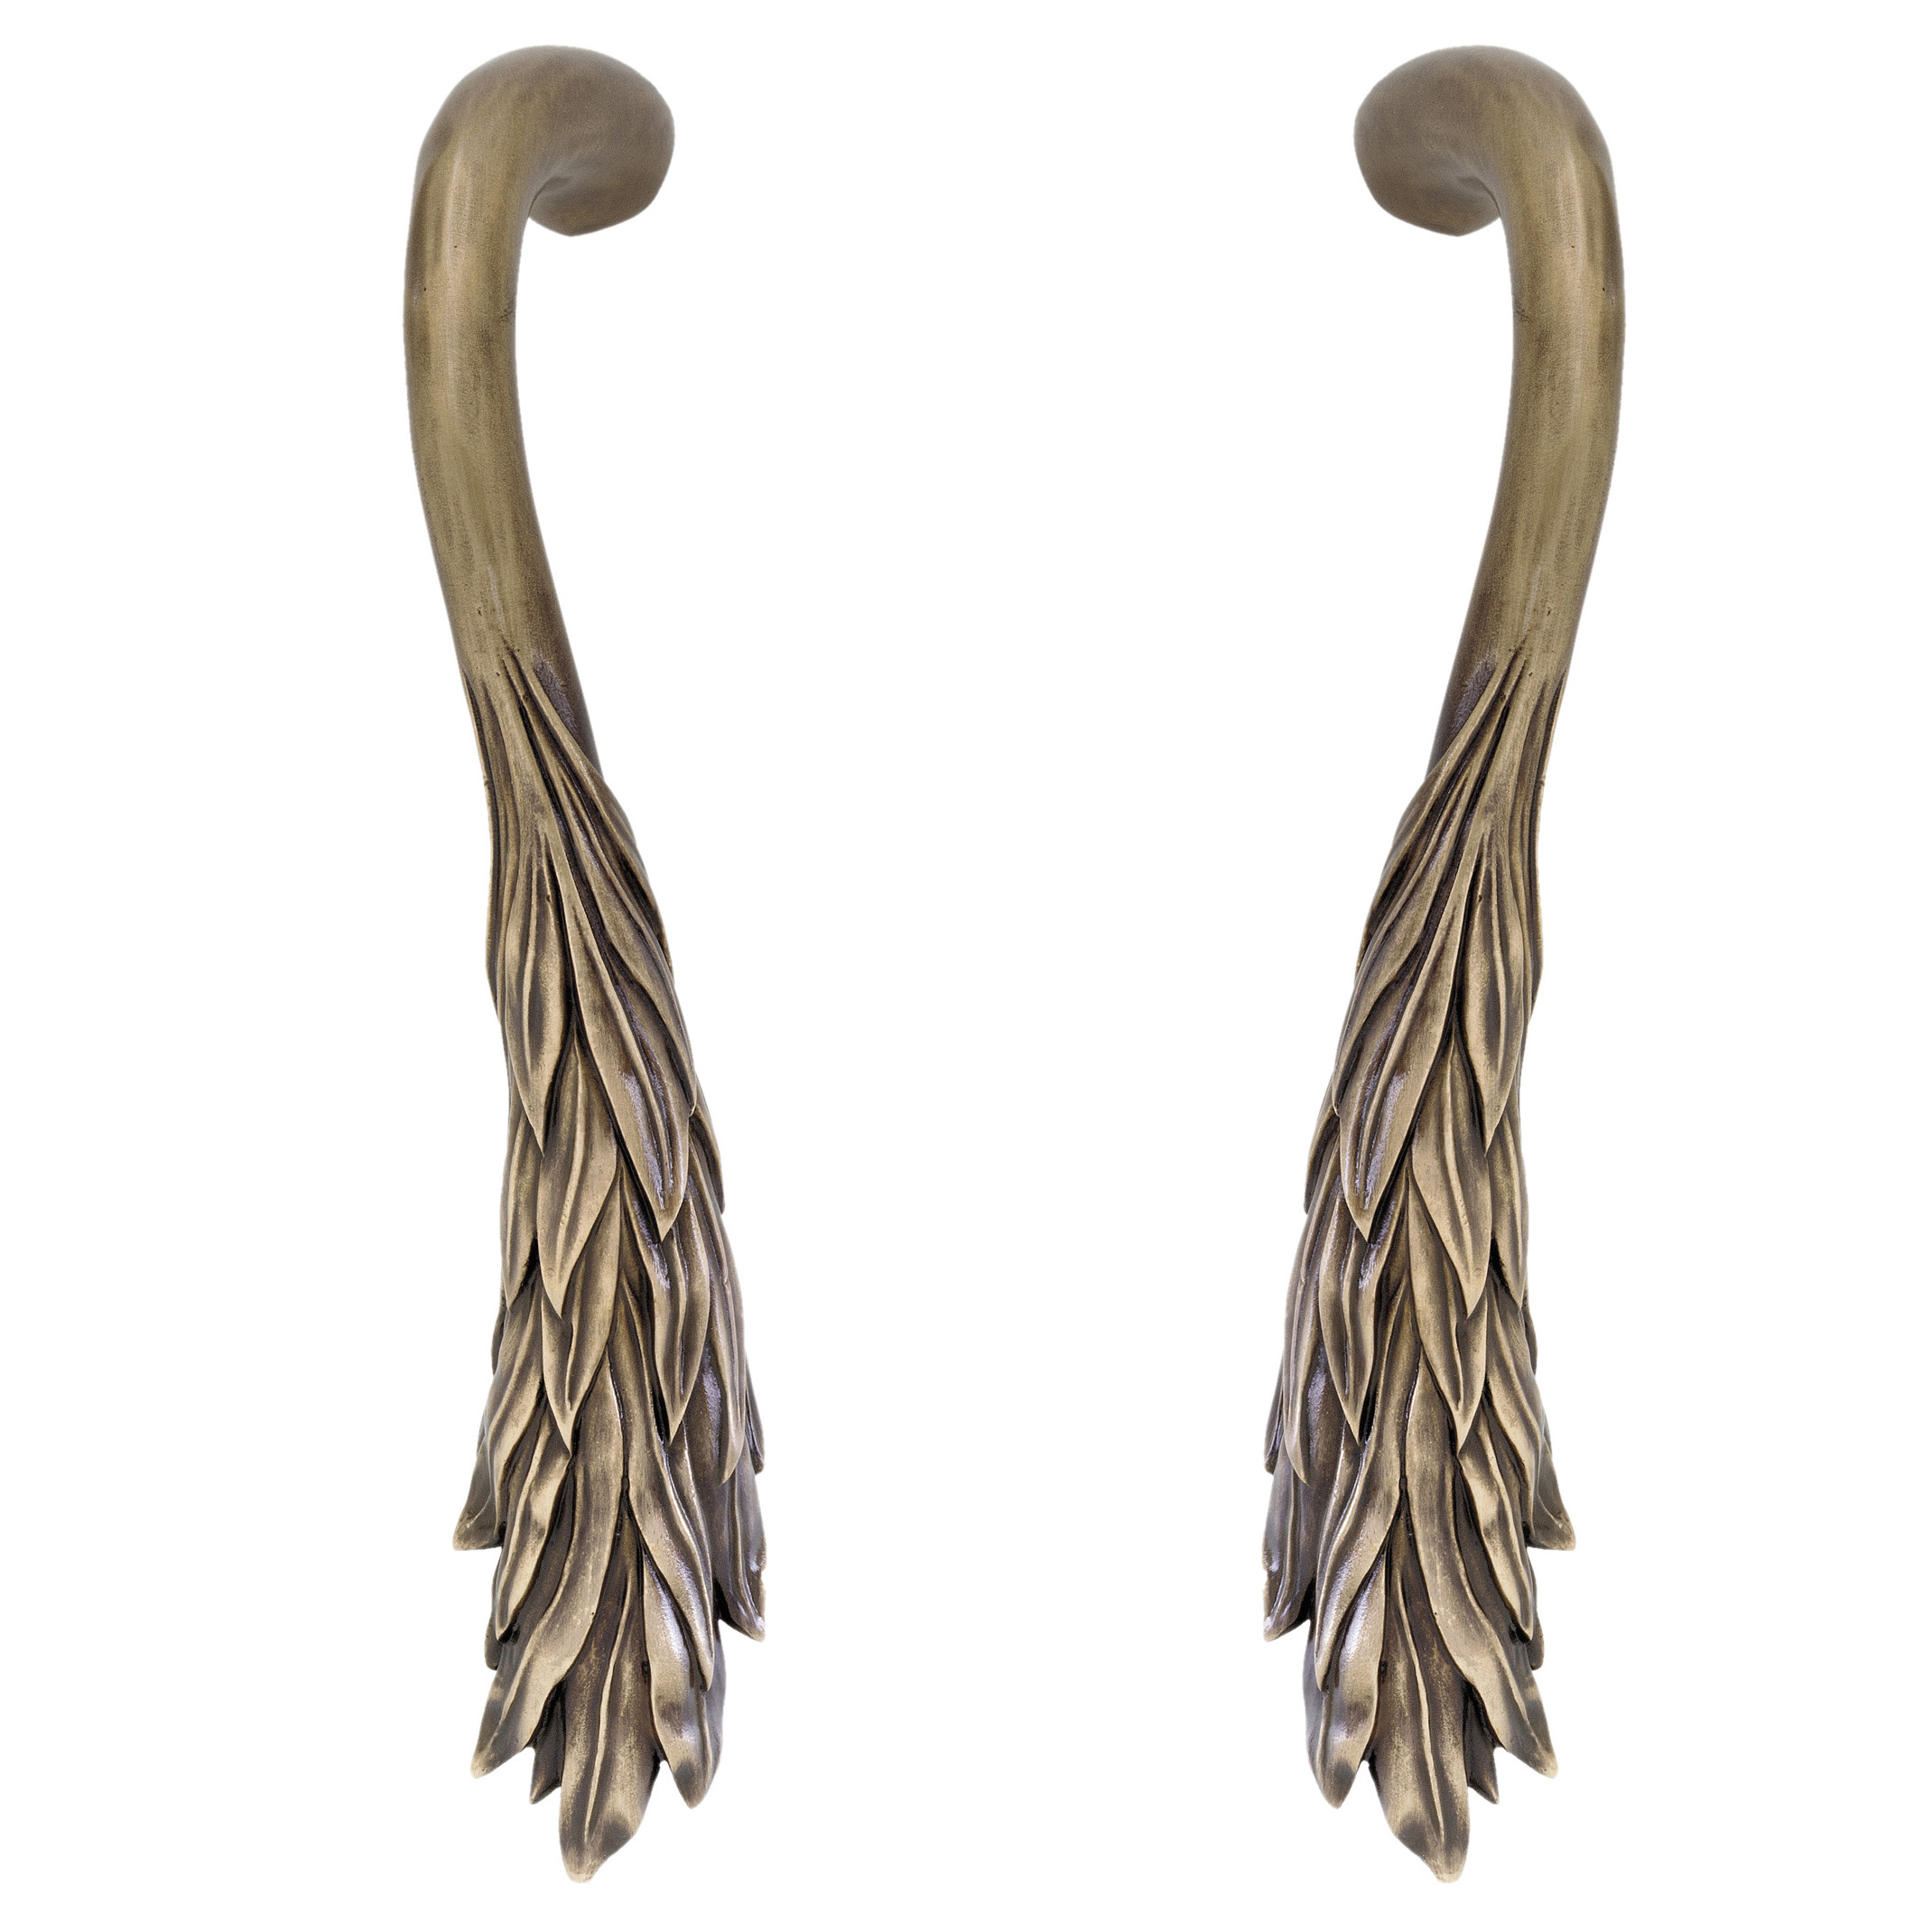 Leaf cabinet pulls Willow